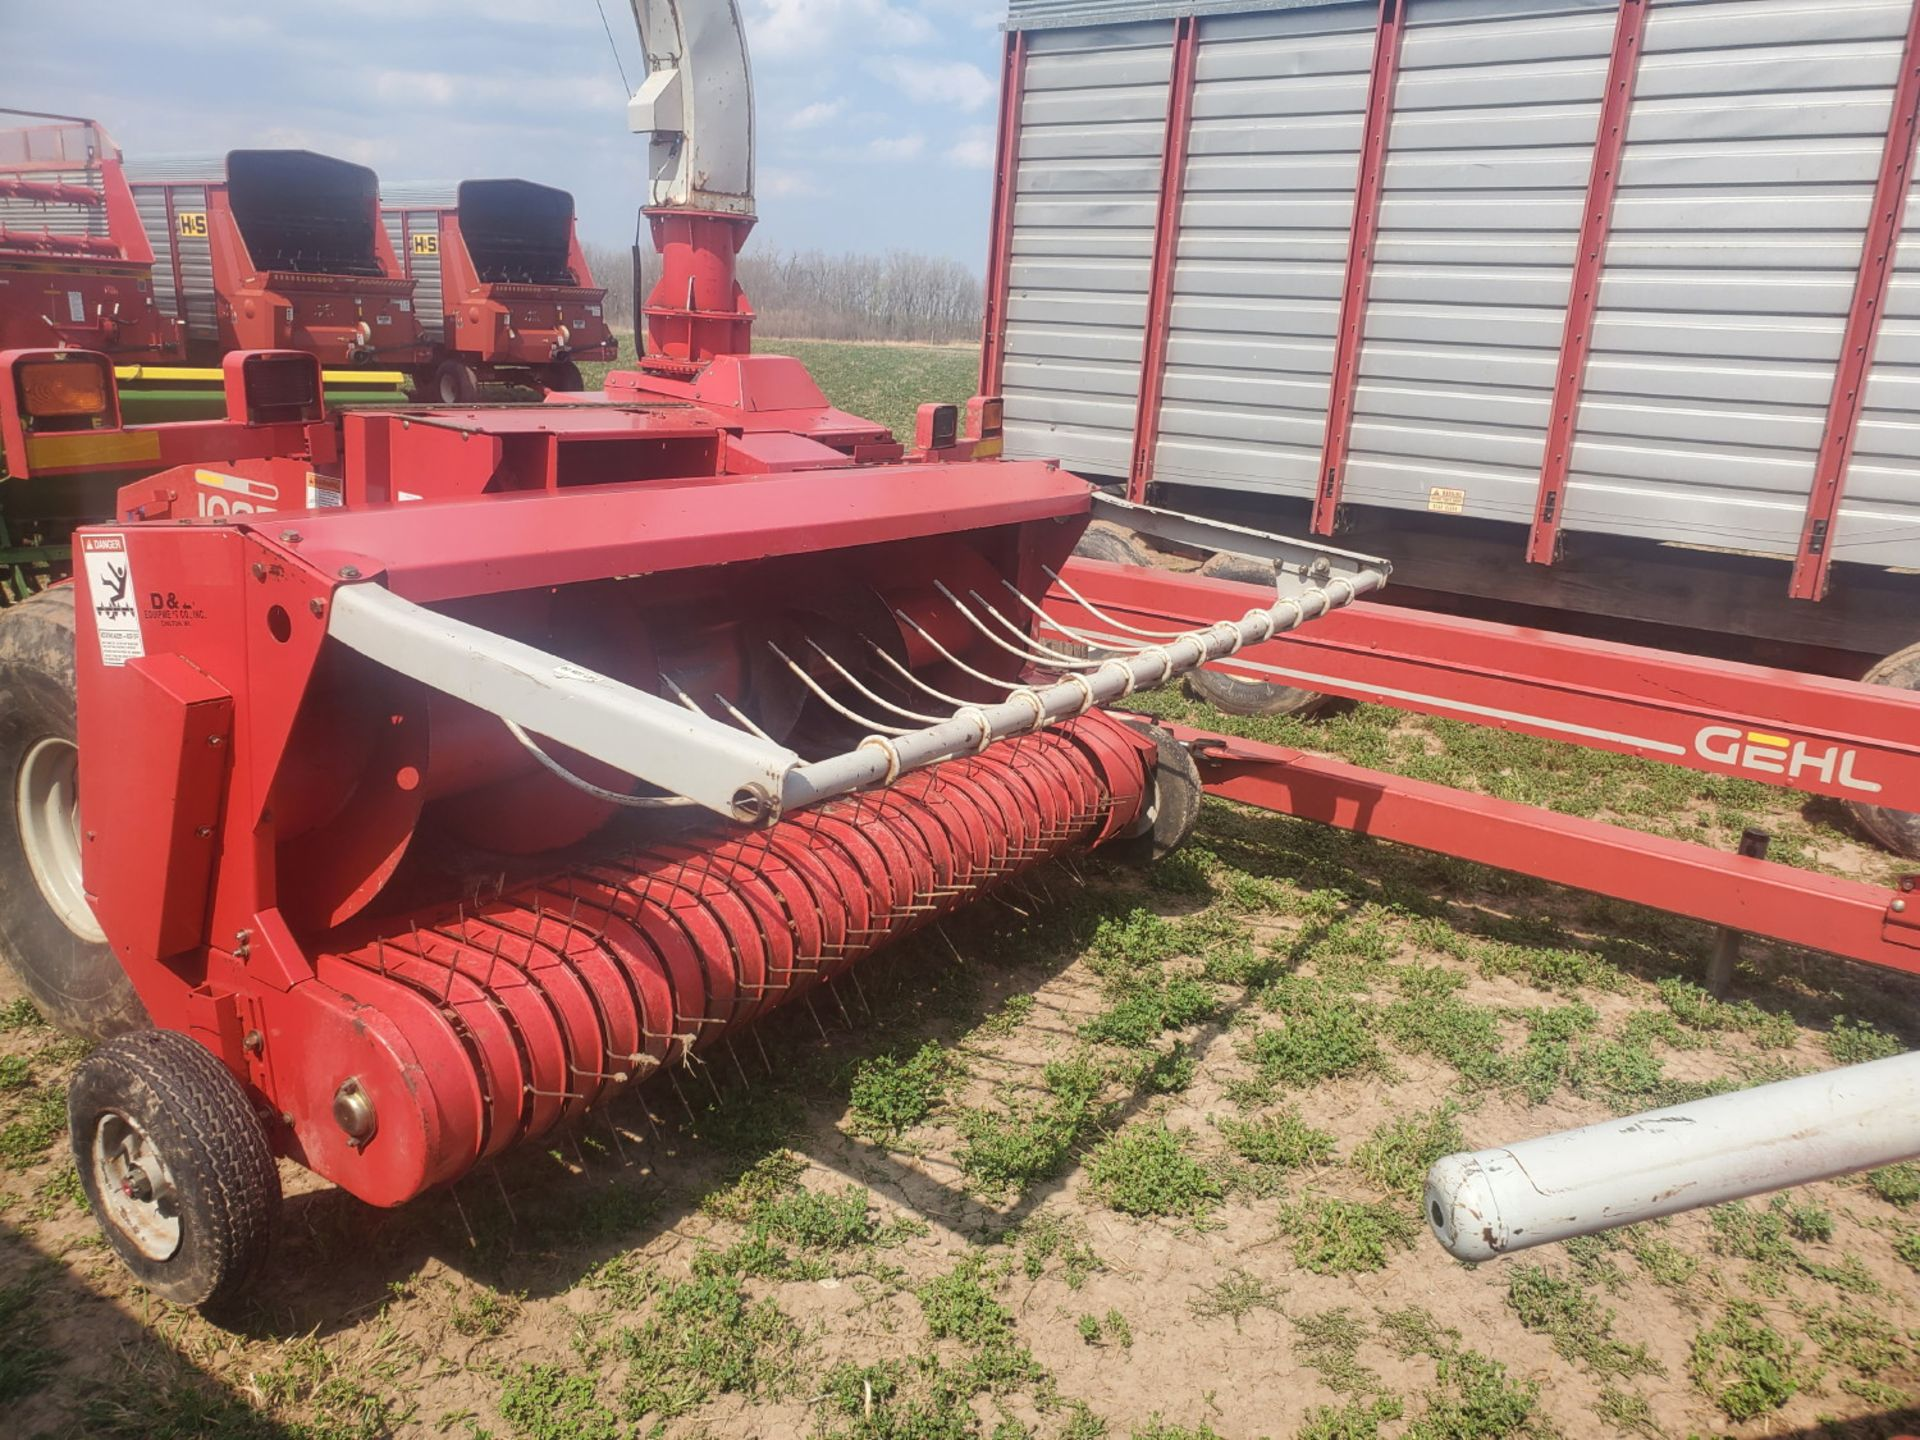 GEHL 1085 FORAGE CHOPPER W/WIDE HAYHEAD - Image 8 of 8